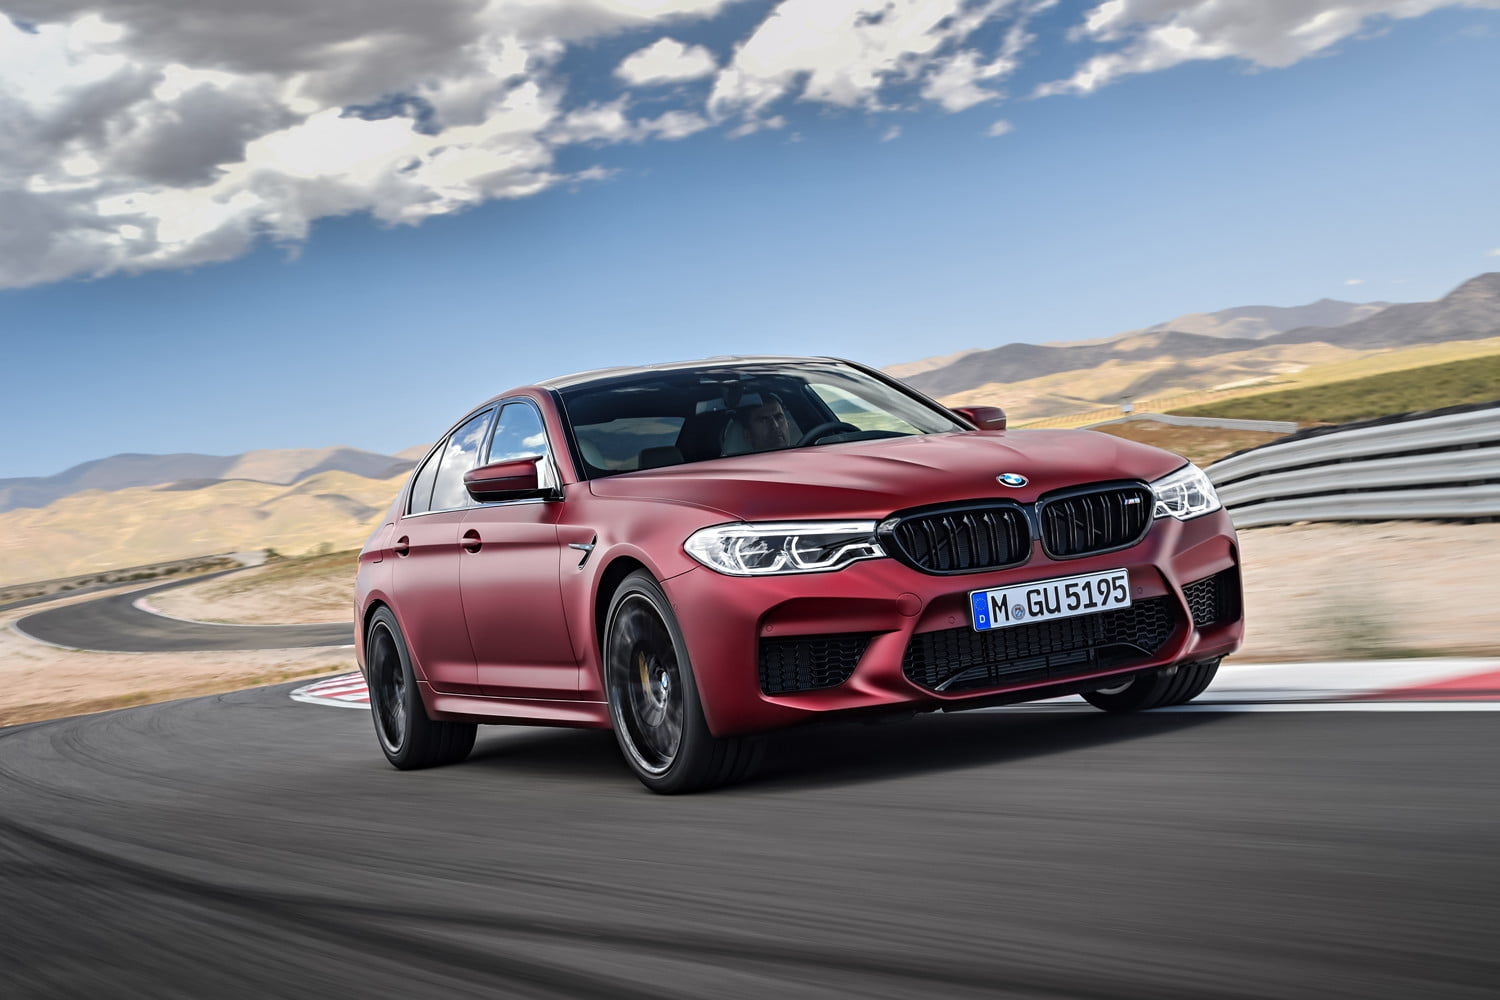 BMW M Joins the Hybrid Gas-Electric Movement With Its Future Cars